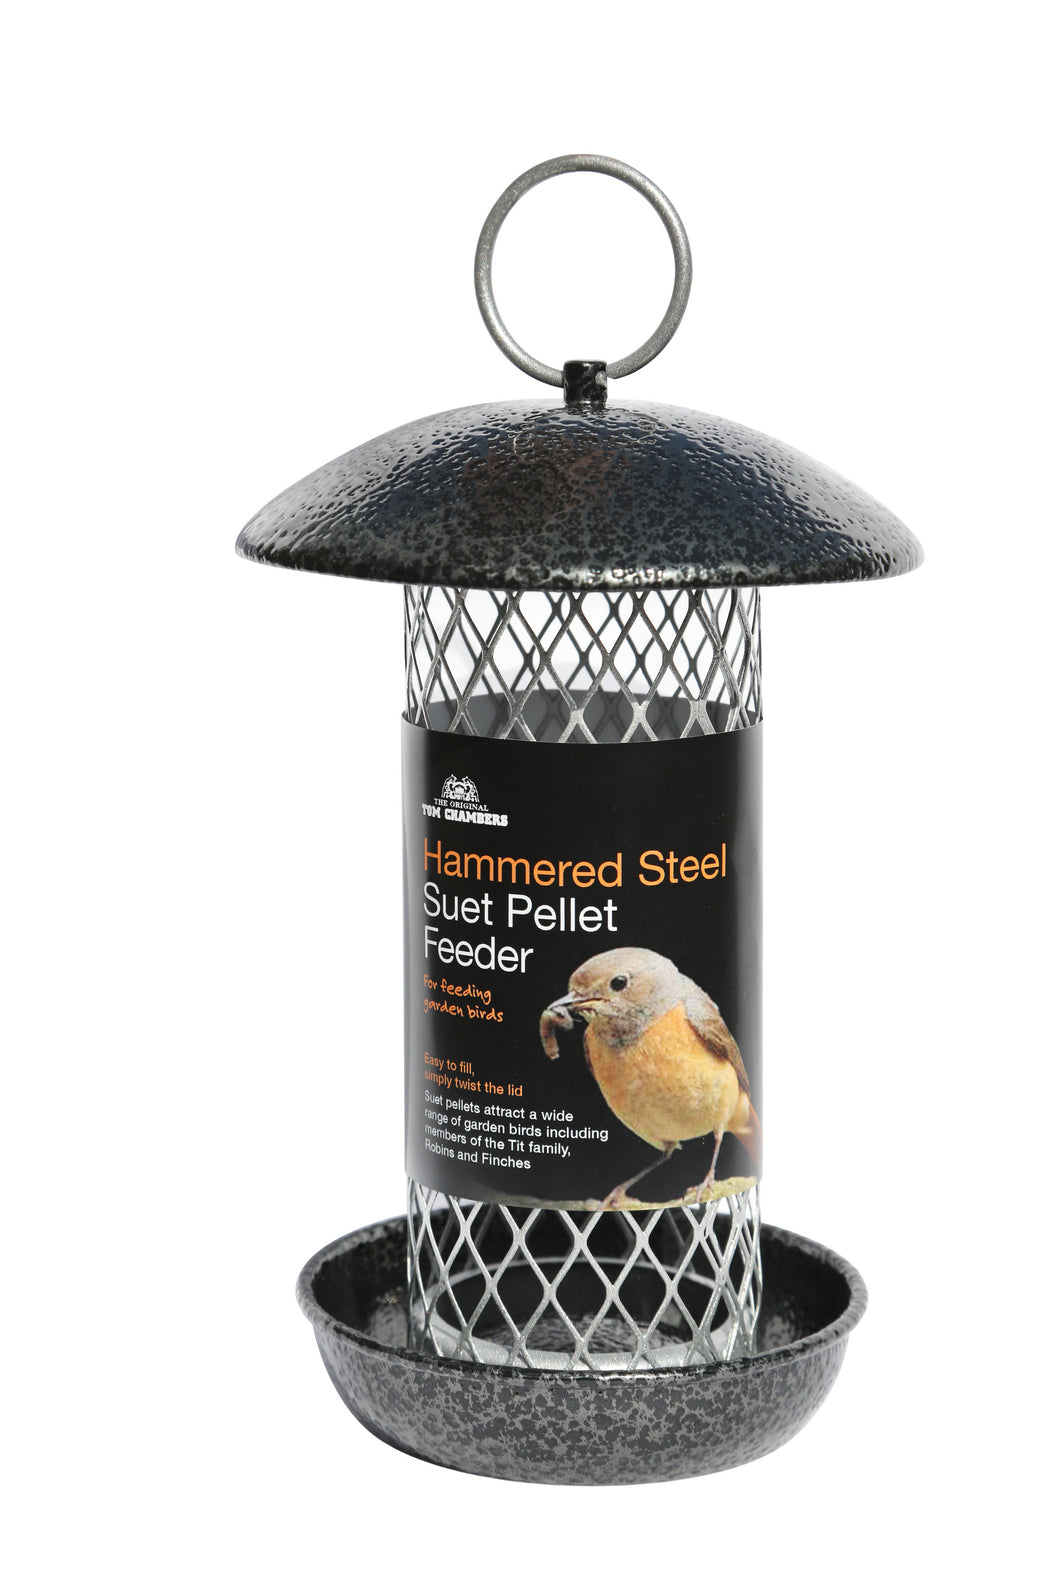 Hammered Steel Suet Pellet Feeder